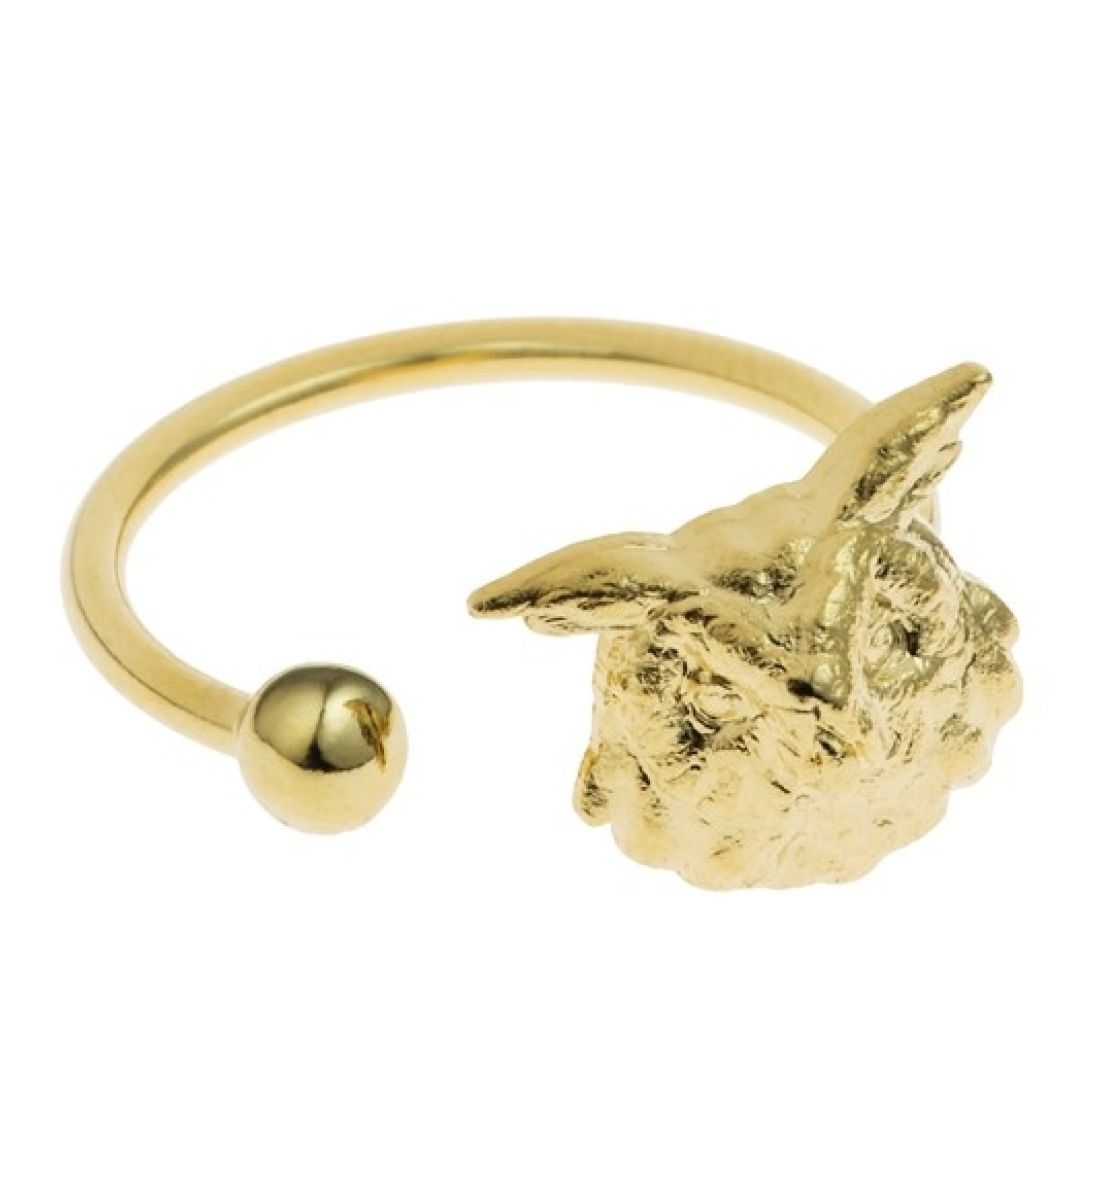 Ring Hiboux golden by Coralie de Seynes